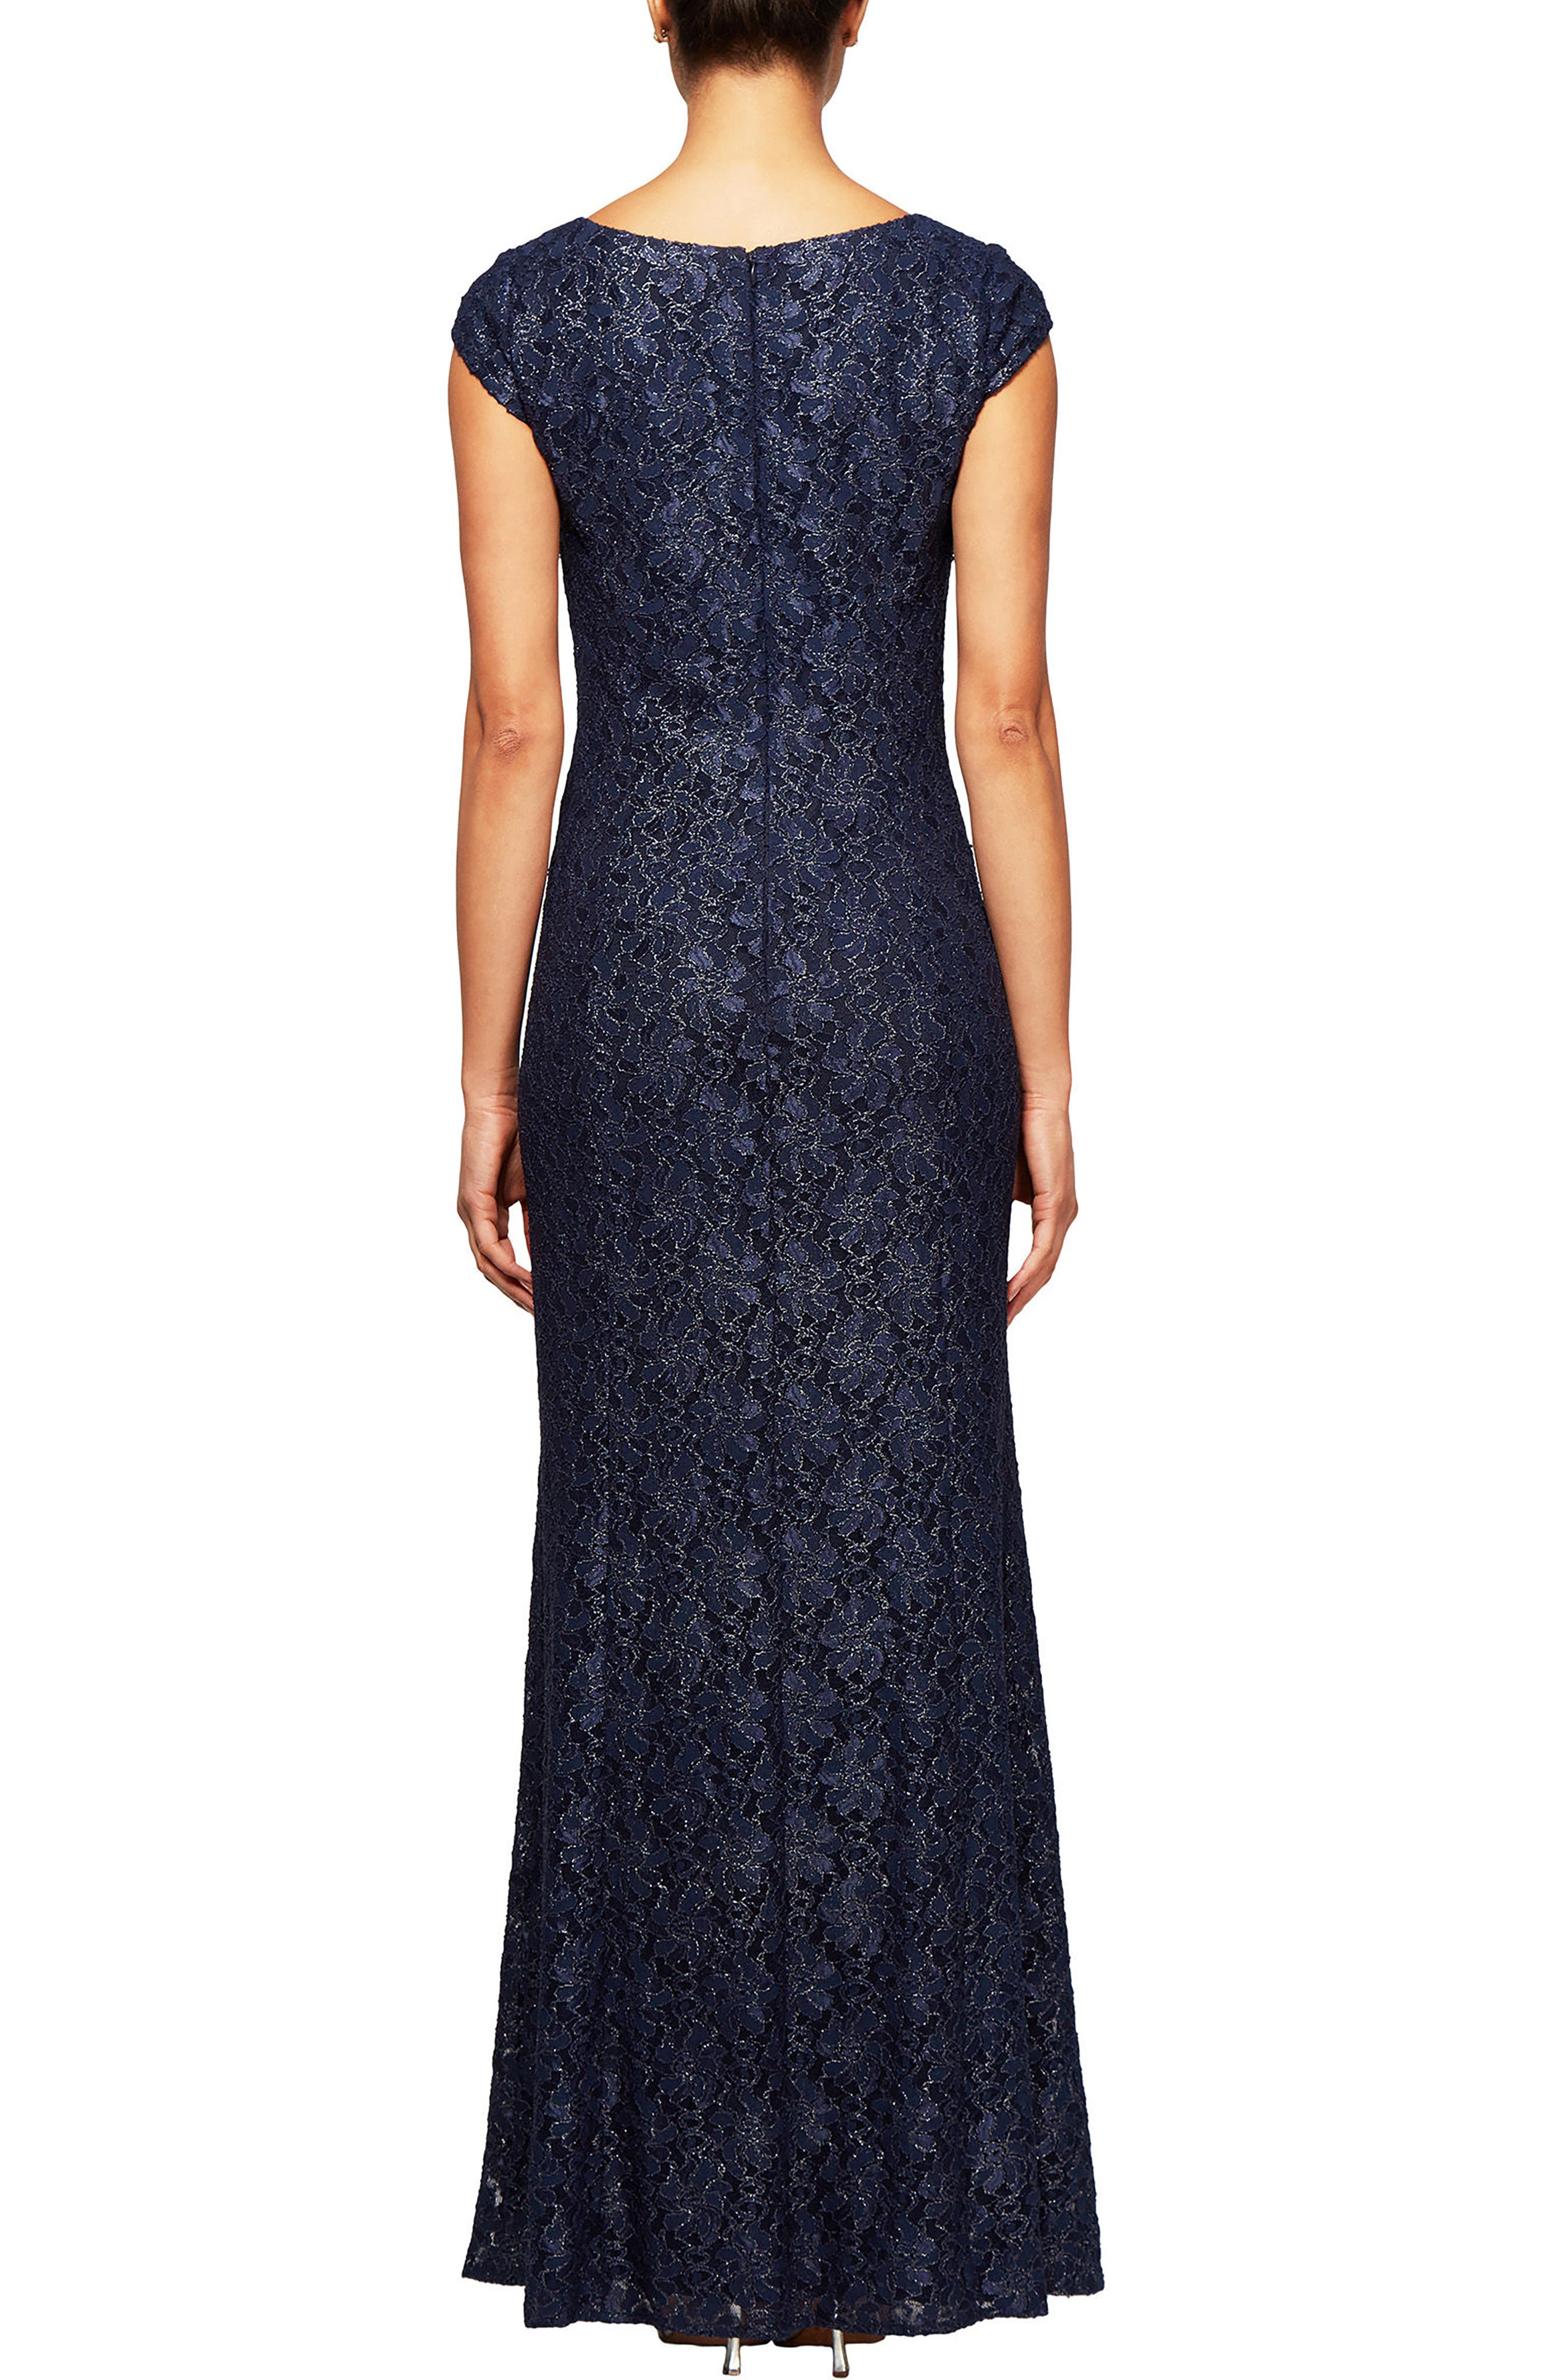 Metallic Lace A-Line Gown,                             Alternate thumbnail 2, color,                             Navy/ Silver